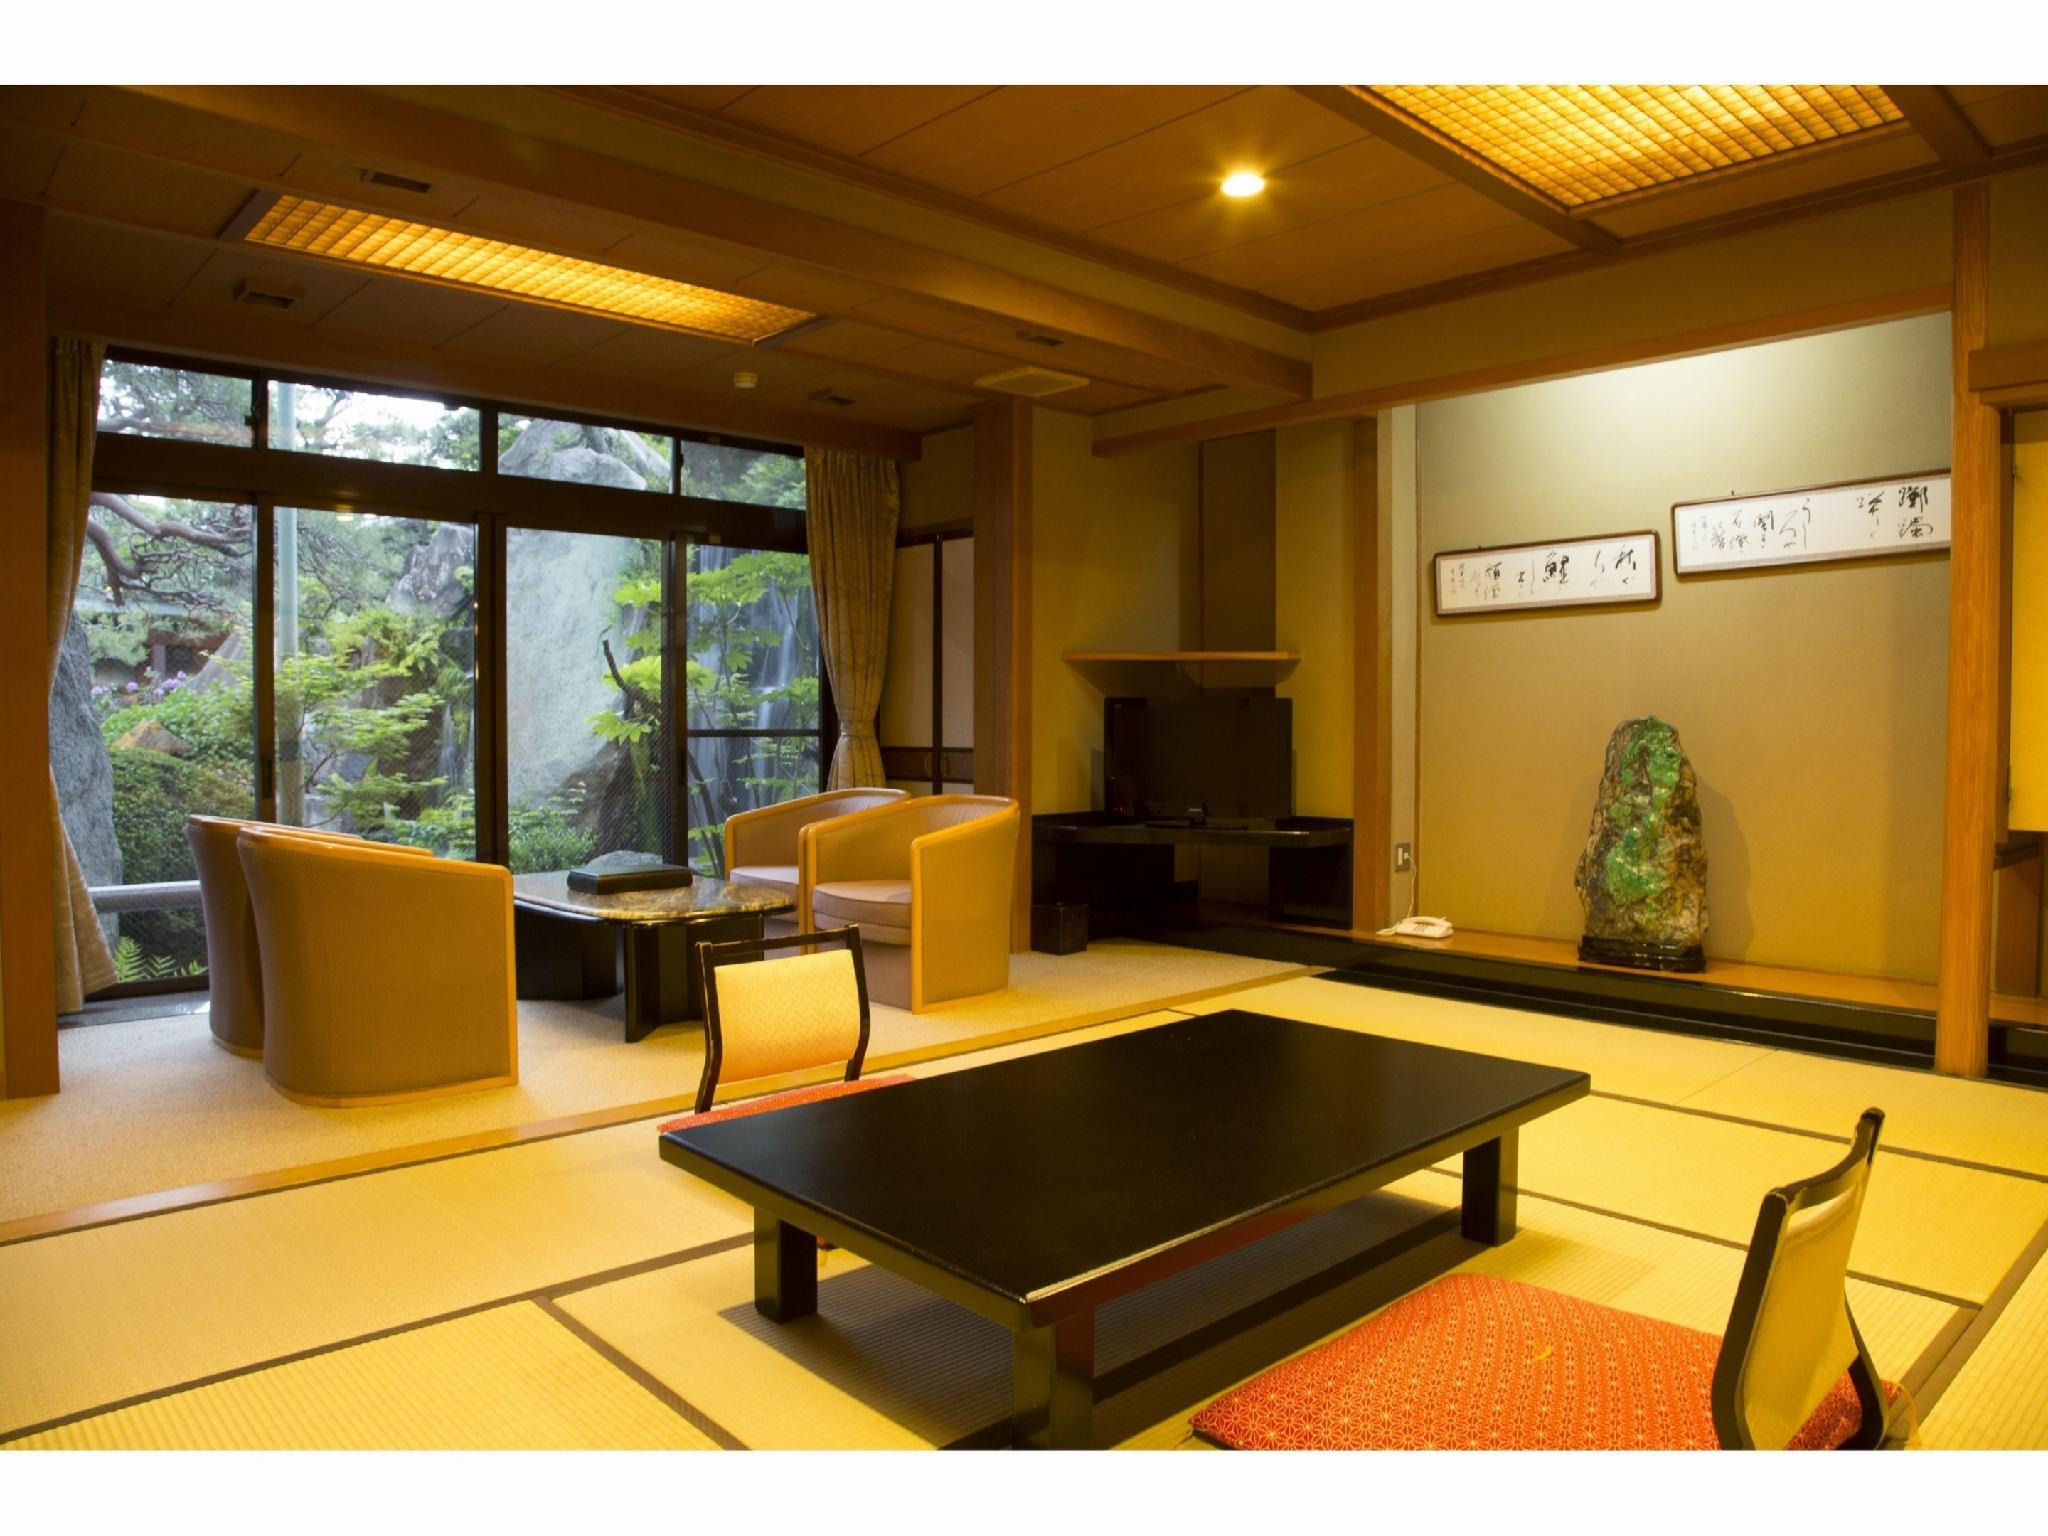 和式房 (Japanese-style Room with Reception Room (Nishiden Type))